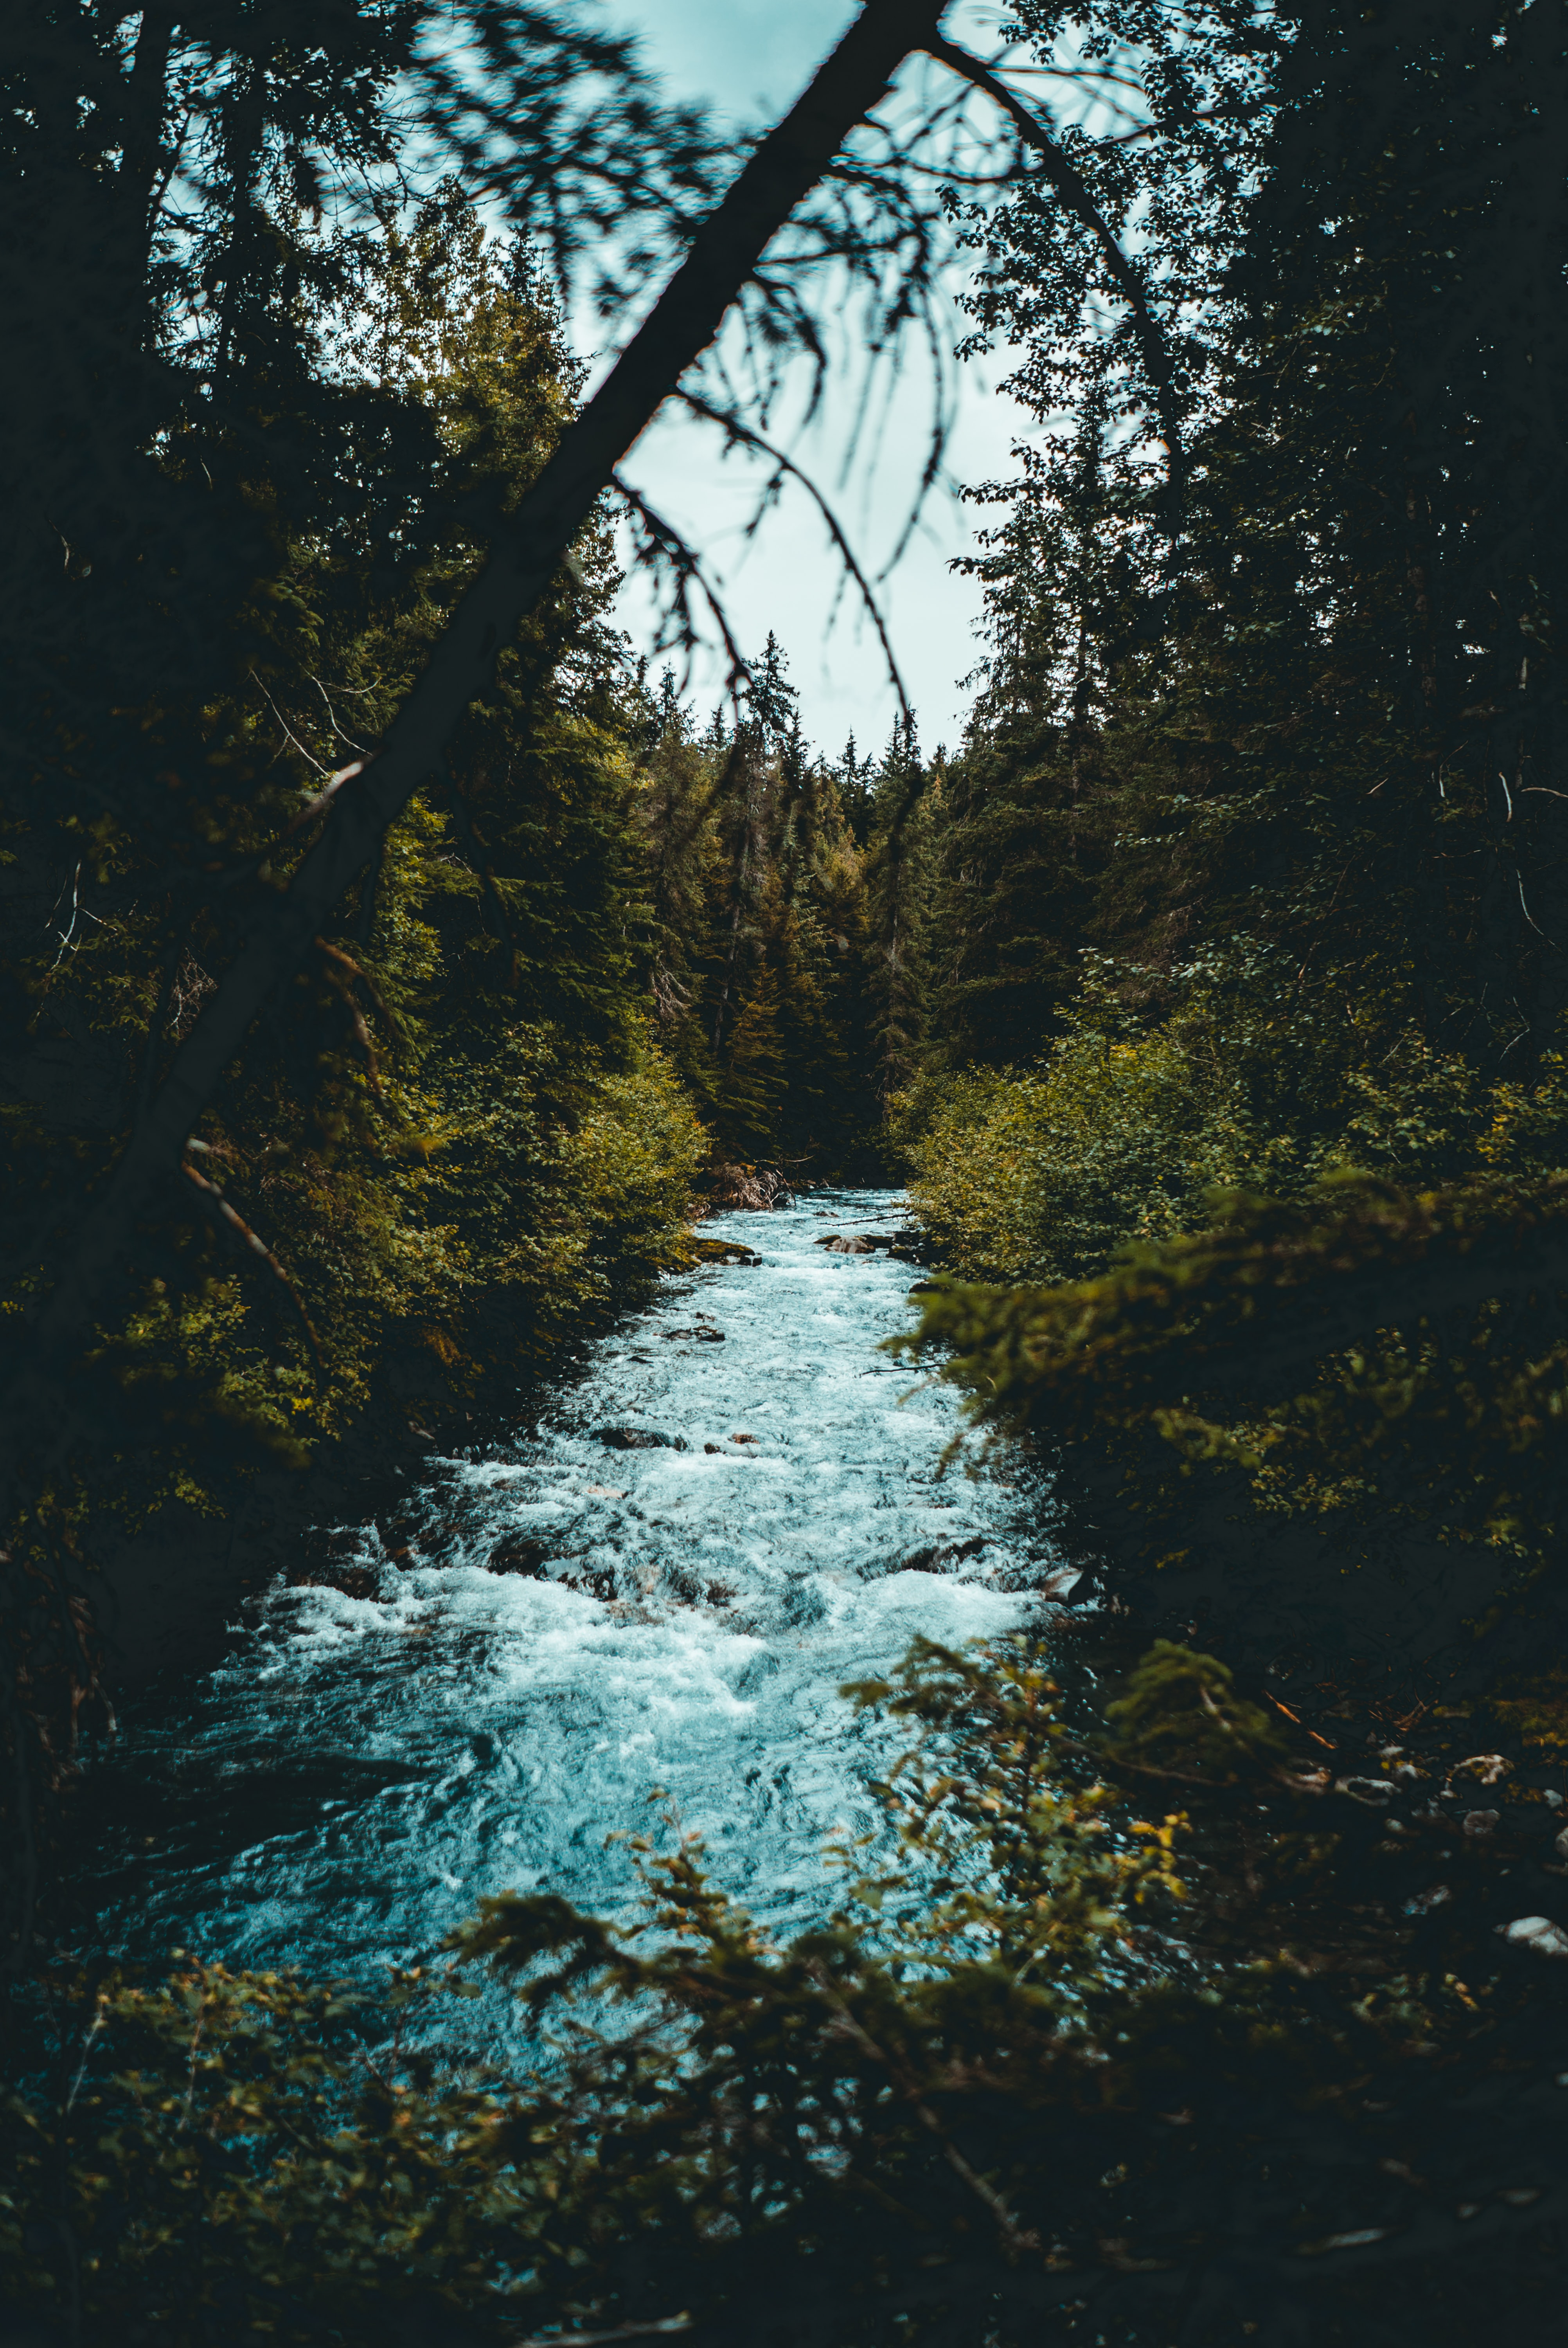 river in between forest